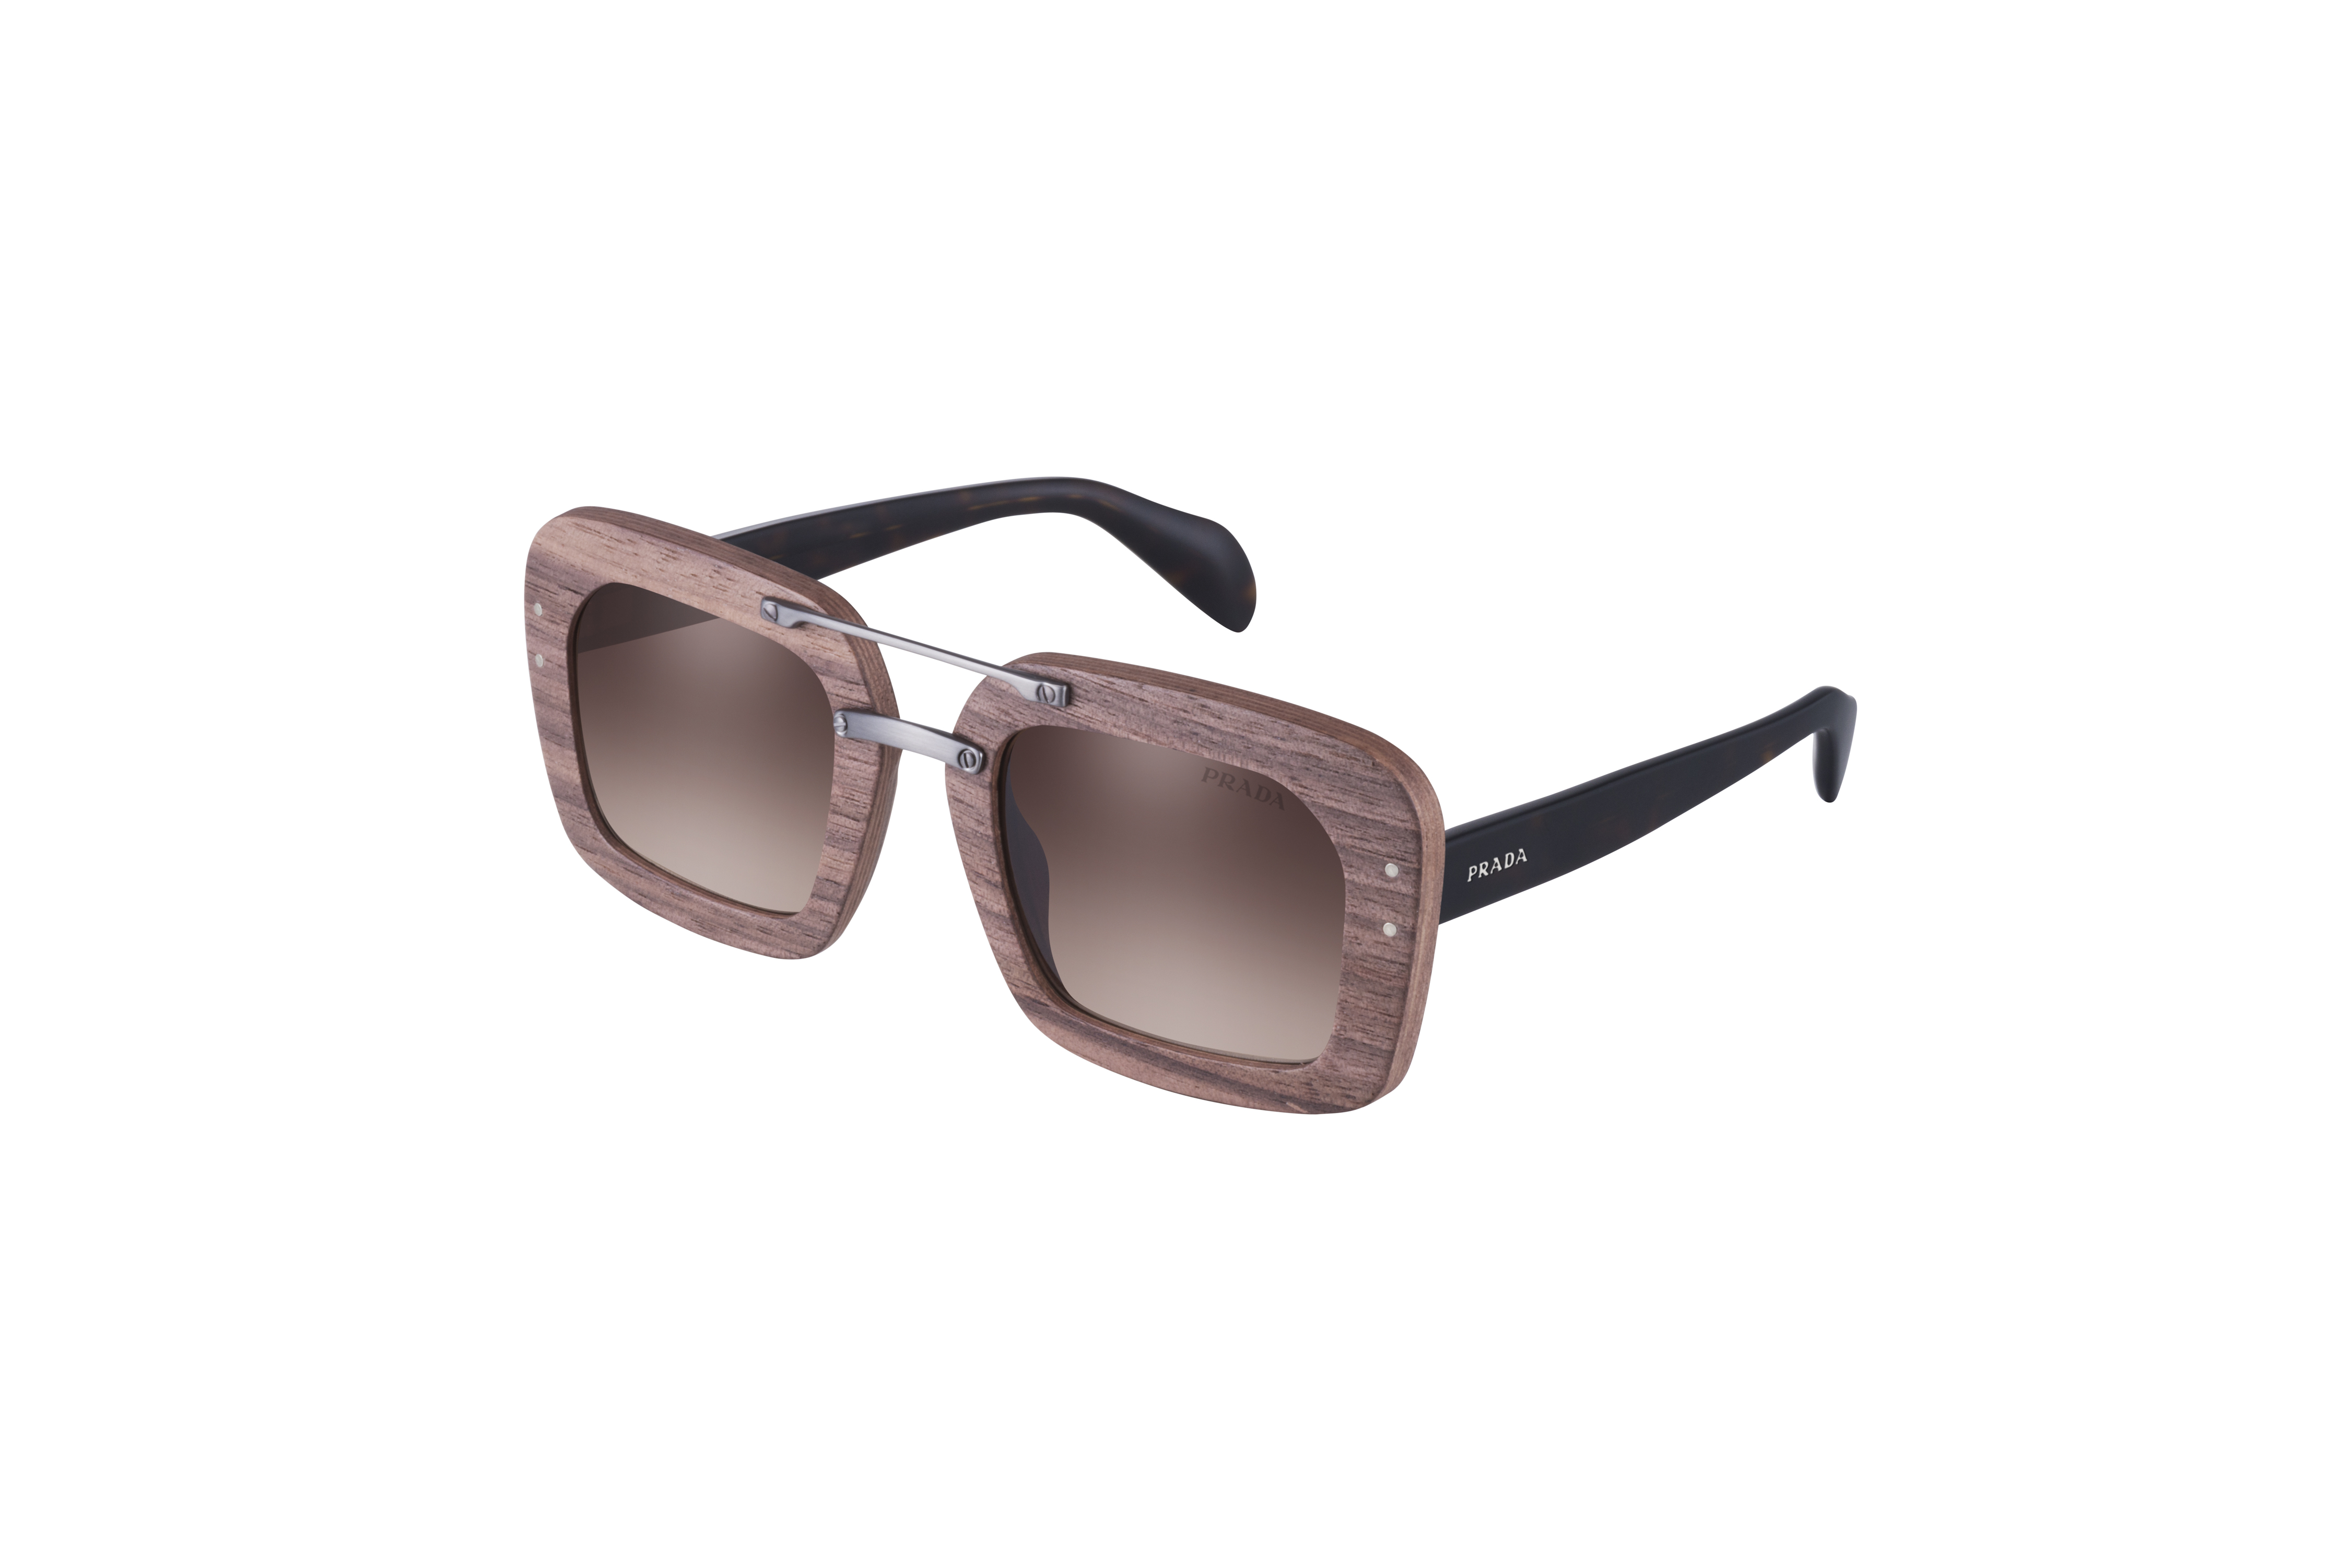 COLLECTION PRADA EYEWEAR PRINTEMPS ÉTÉ 2015 - Luxsure 5d46ac4b161a